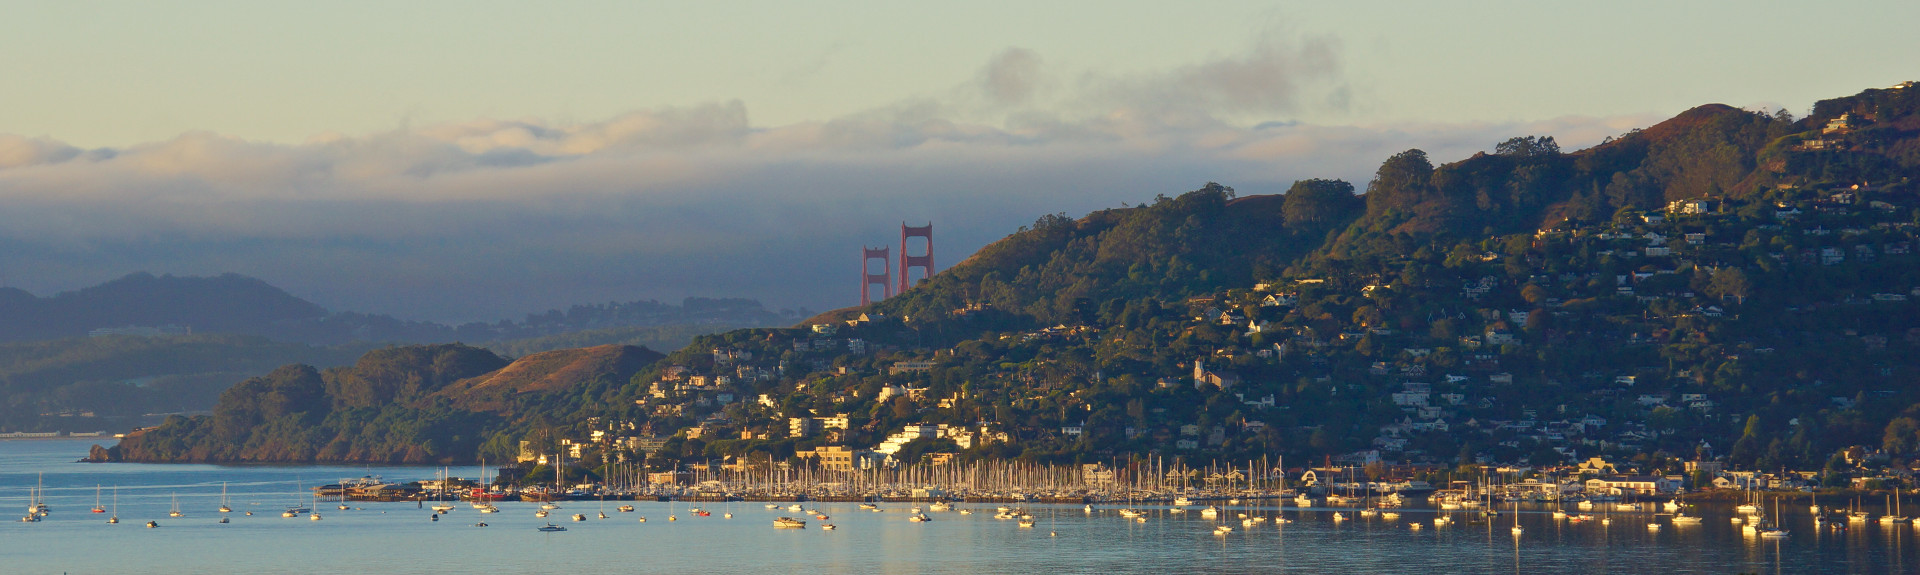 Sausalito Dawn - Mike Moyle